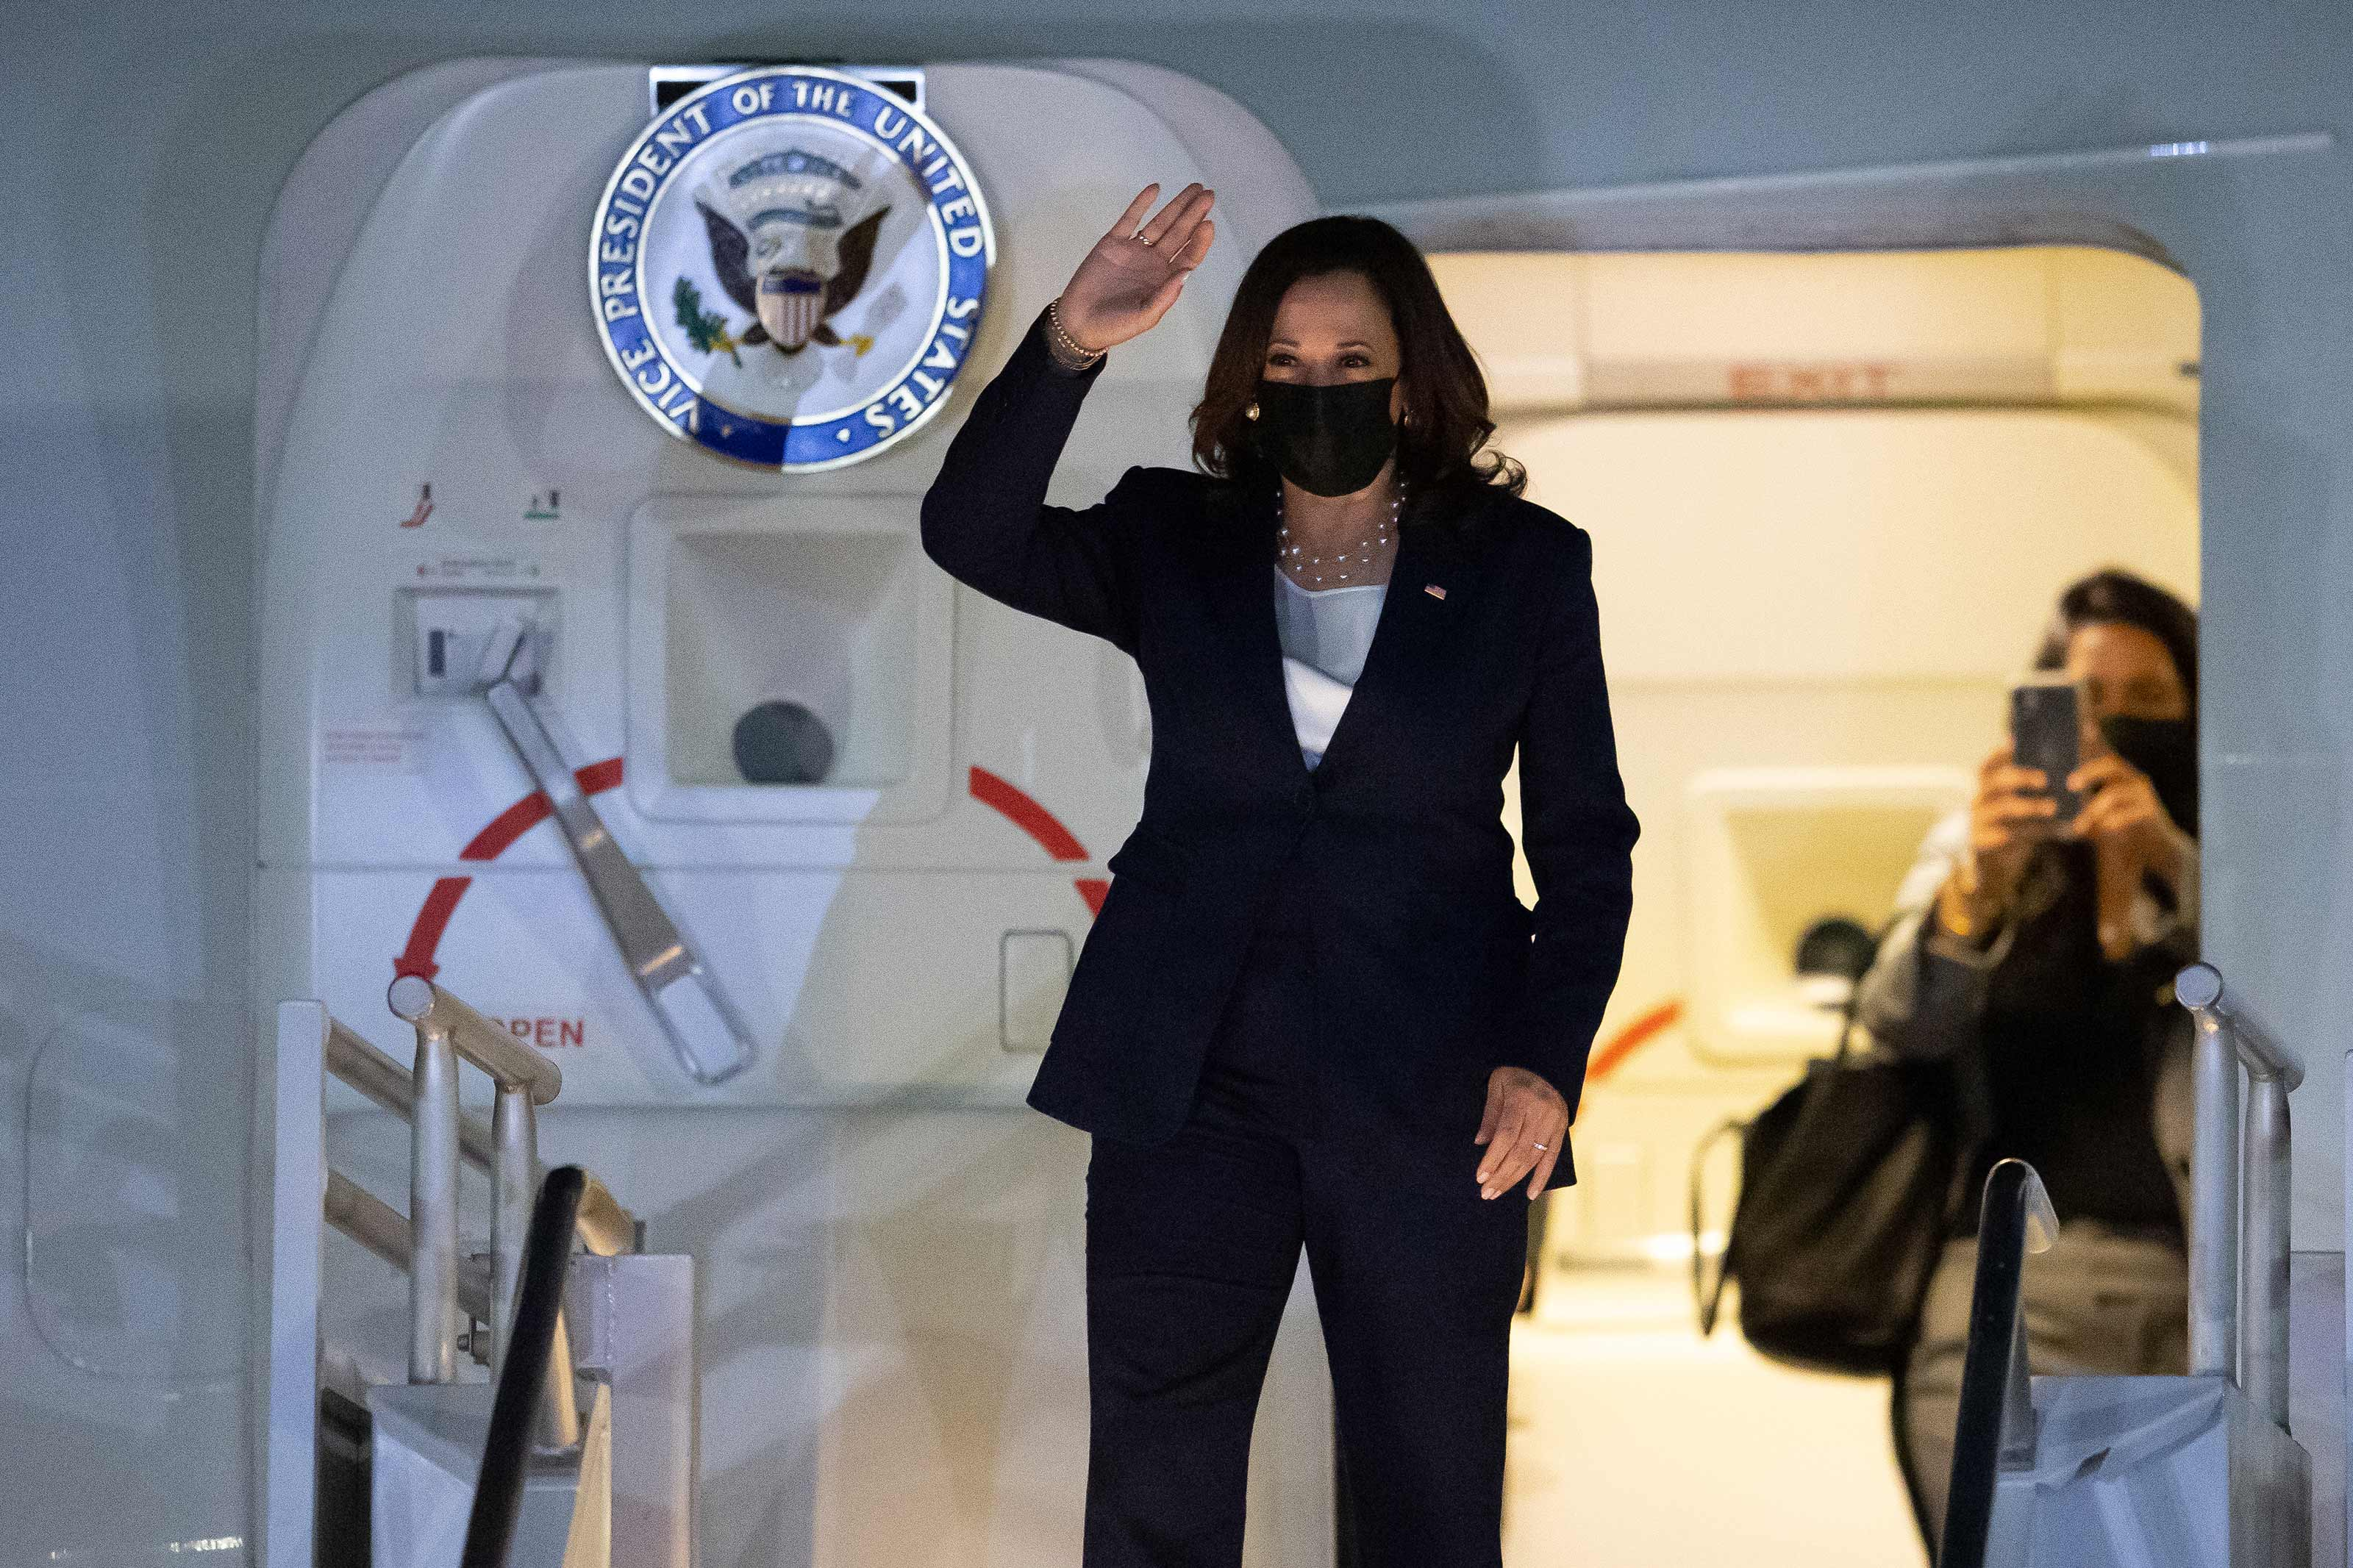 Vice President Kamala Harris arrives at Benito Juarez International Airport for her official visit to Mexico on June 7 in Mexico City.